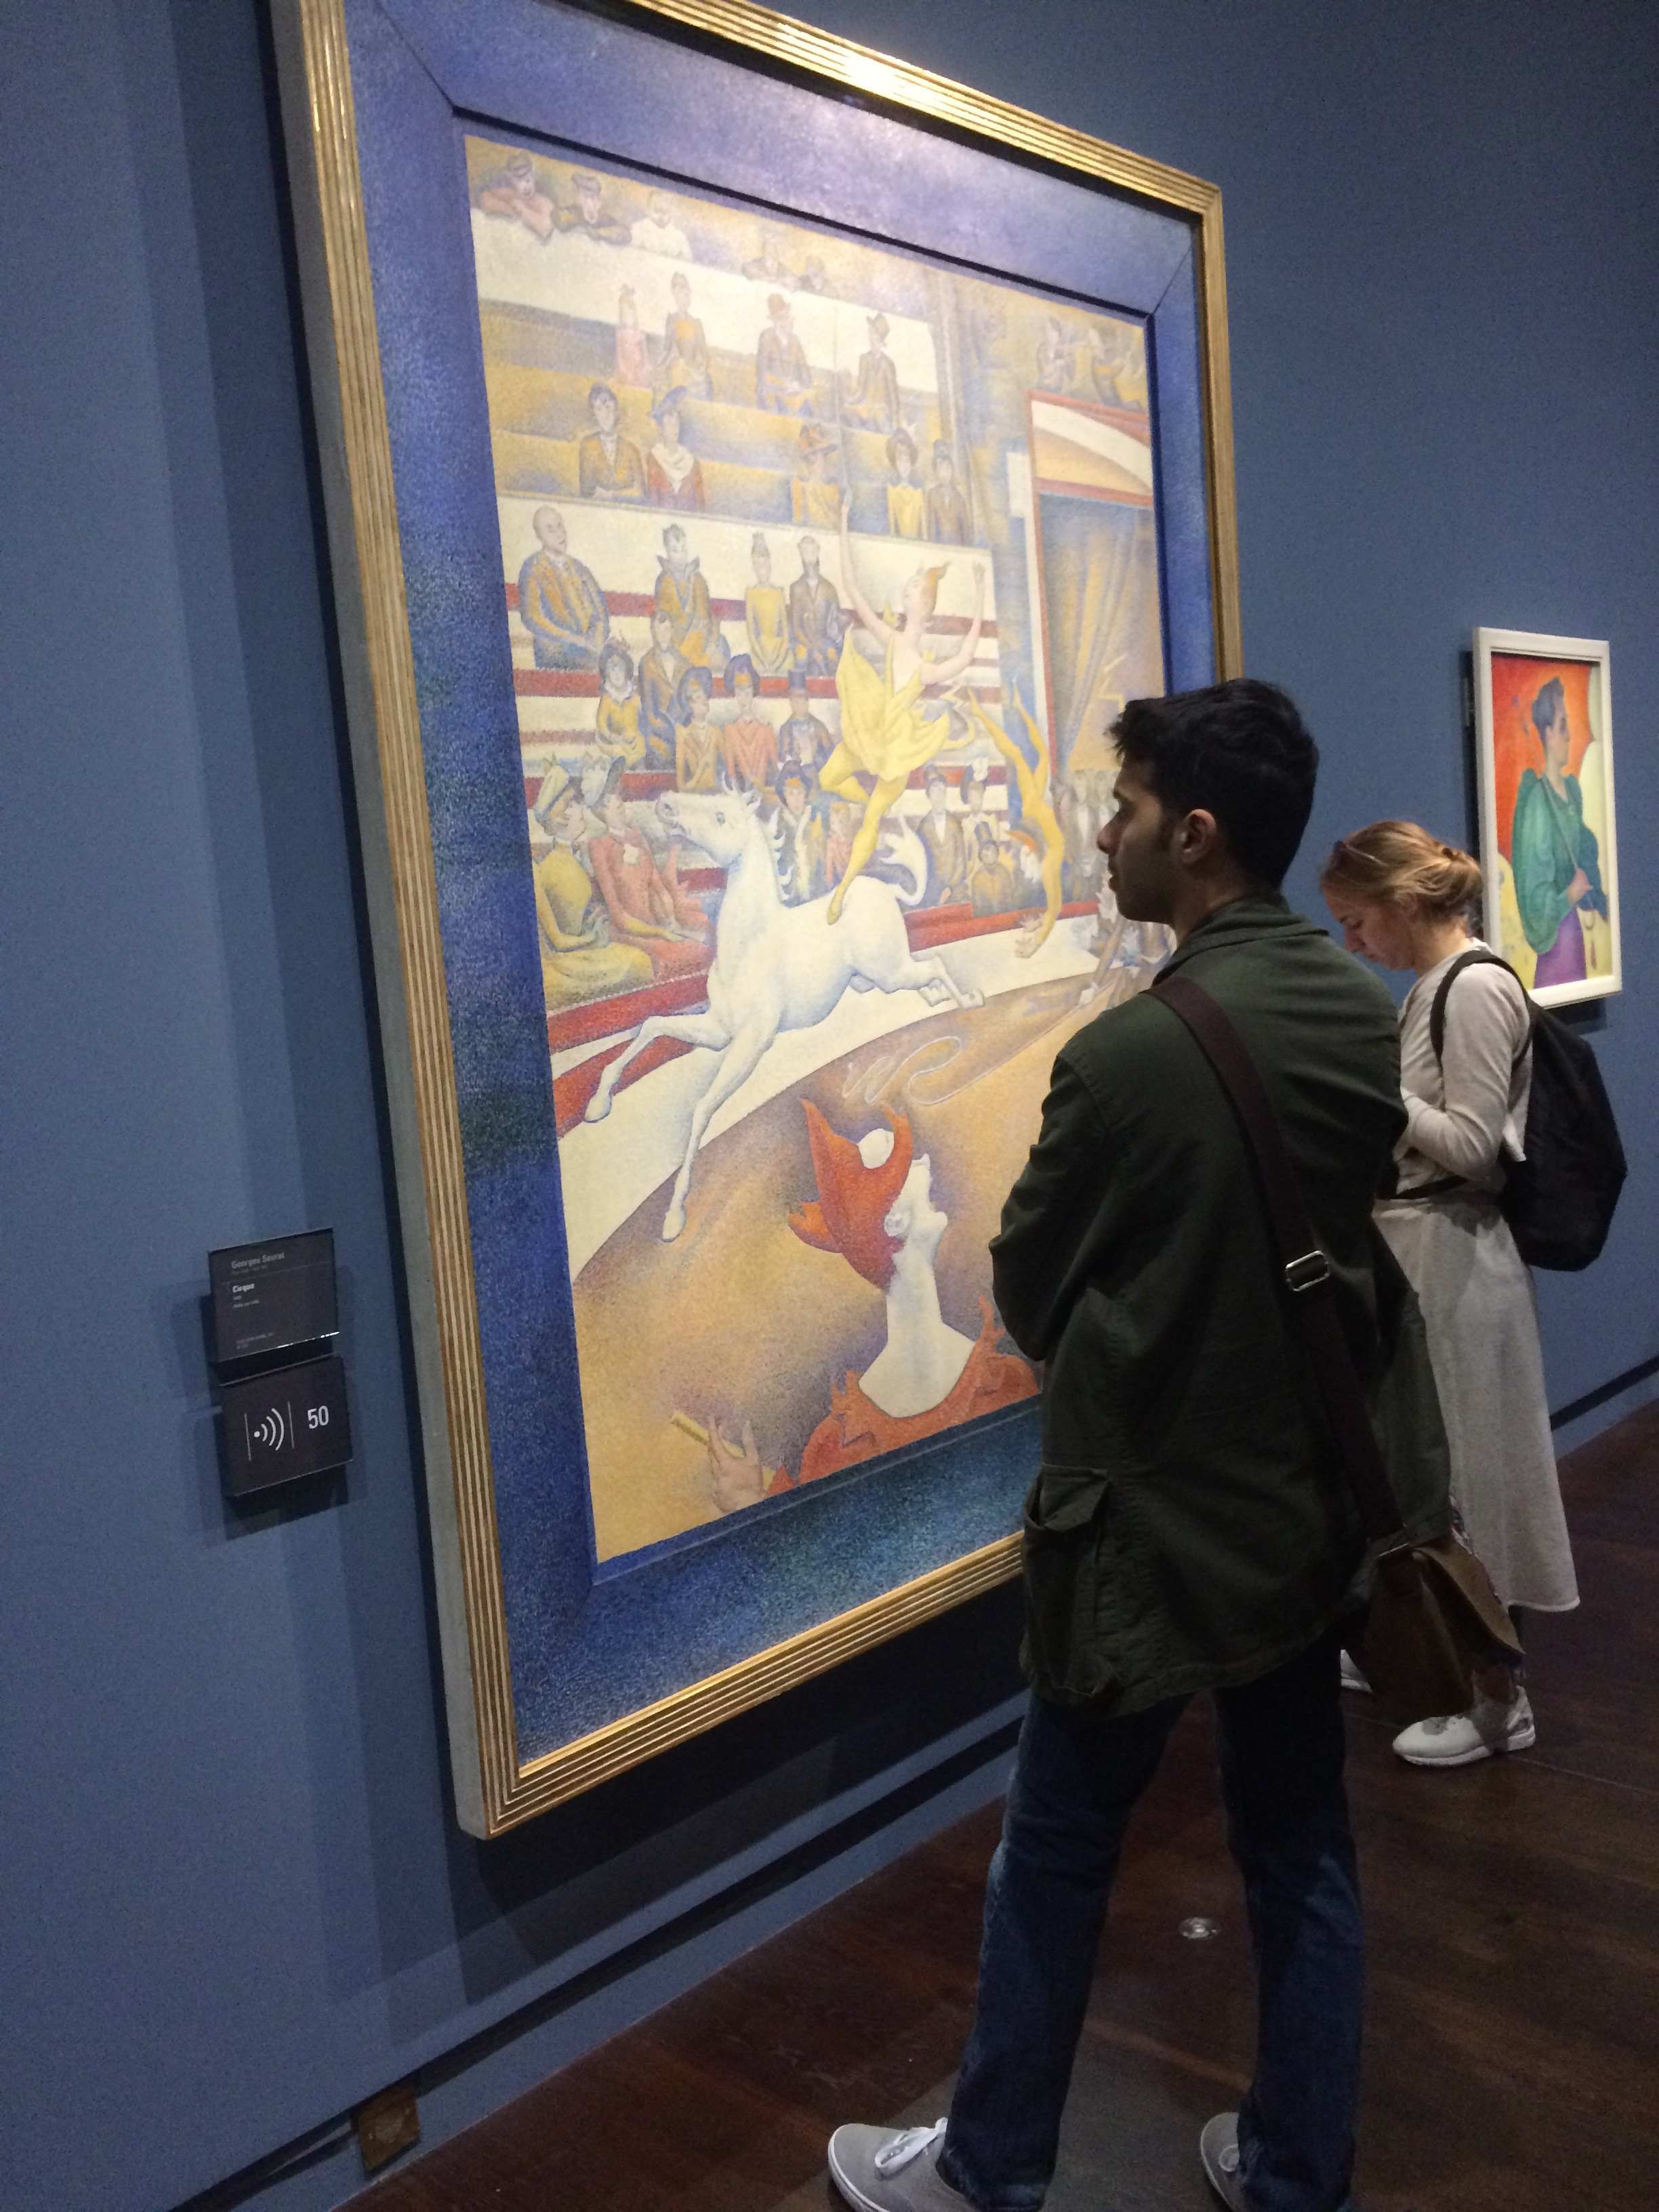 Seeing his assigned image up close, Stephane was surprised by his reaction to Seurat's painting.